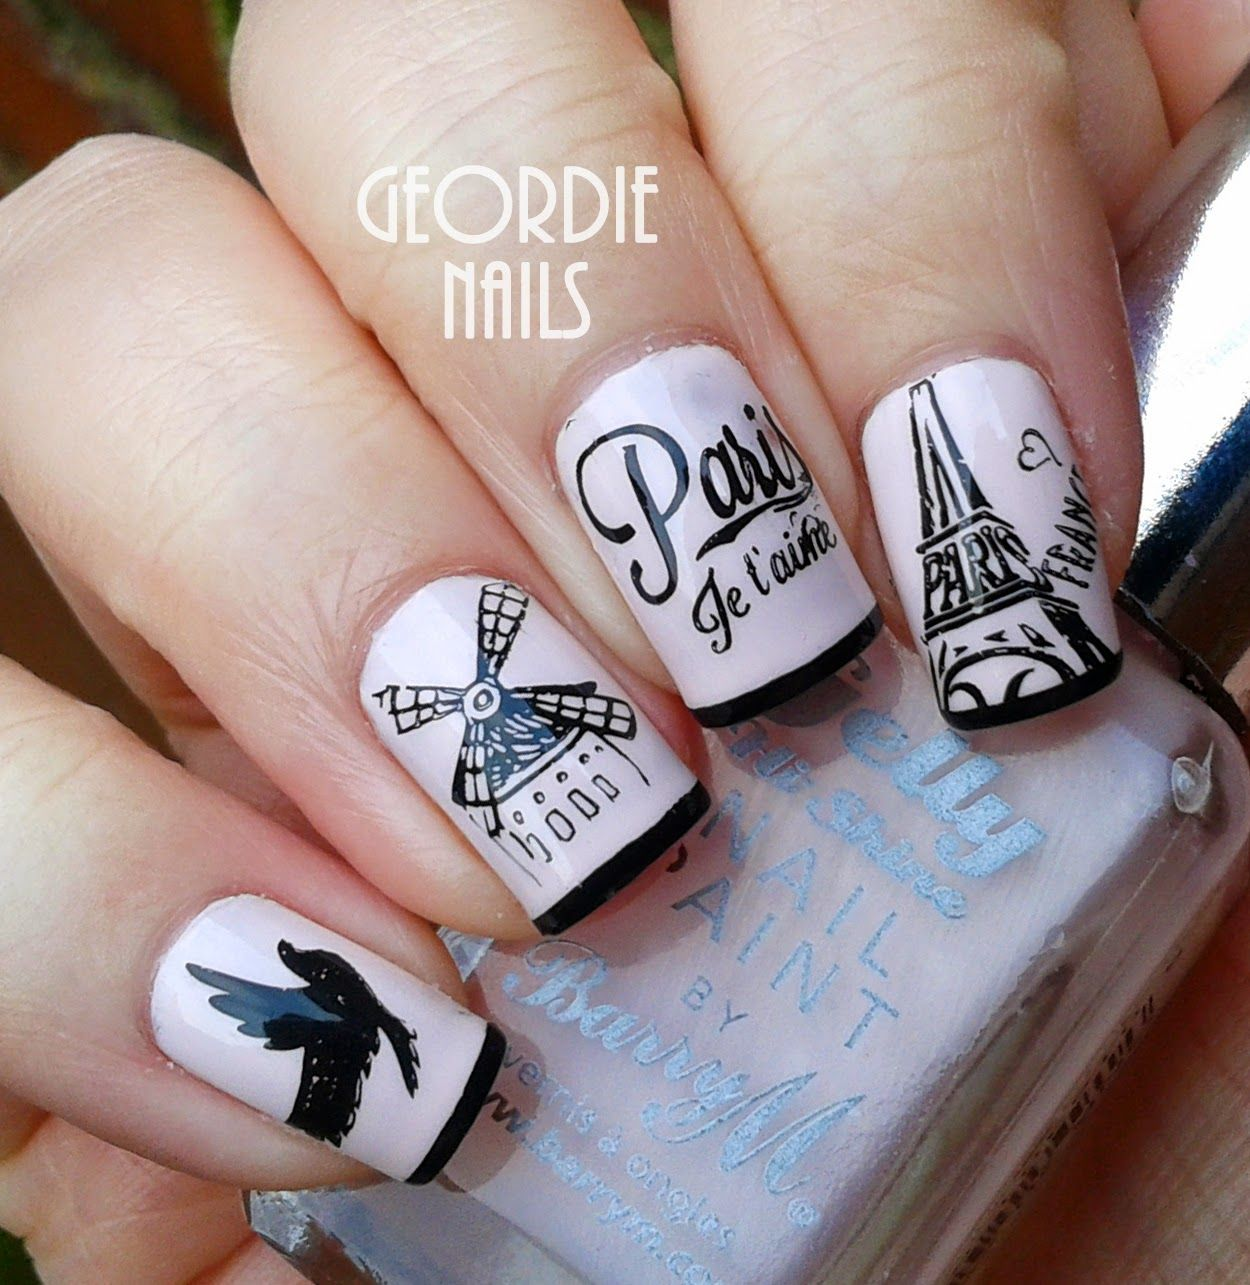 Geordie nails born pretty stamping plate bp36 france nails geordie nails born pretty stamping plate bp36 france solutioingenieria Image collections